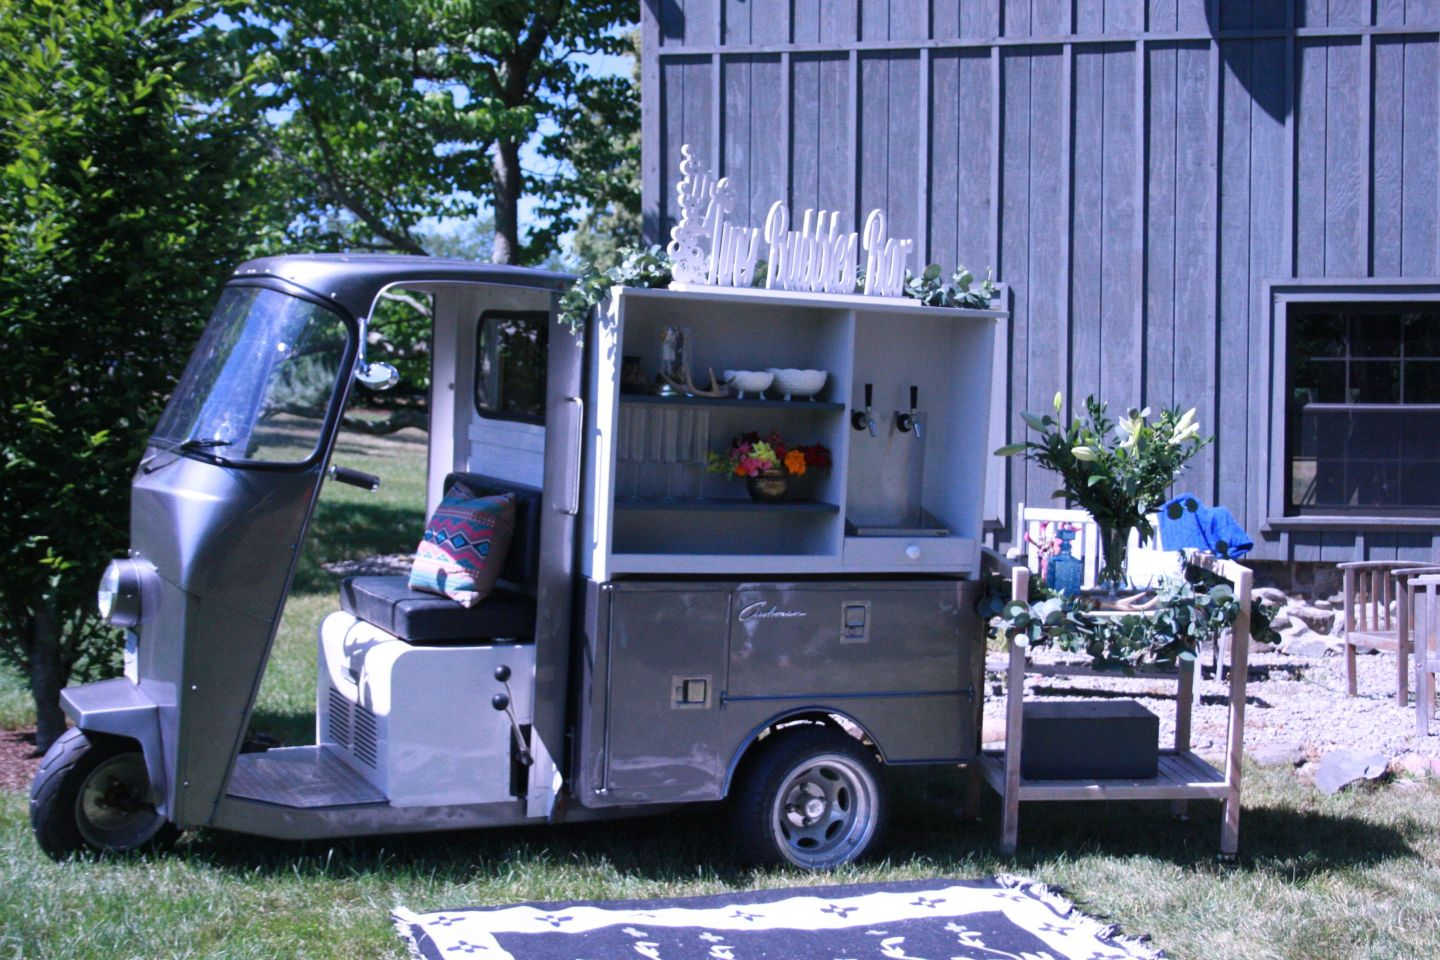 img 1990 tips for an unforgettable wedding bar from hudson trailer company [ 1440 x 960 Pixel ]